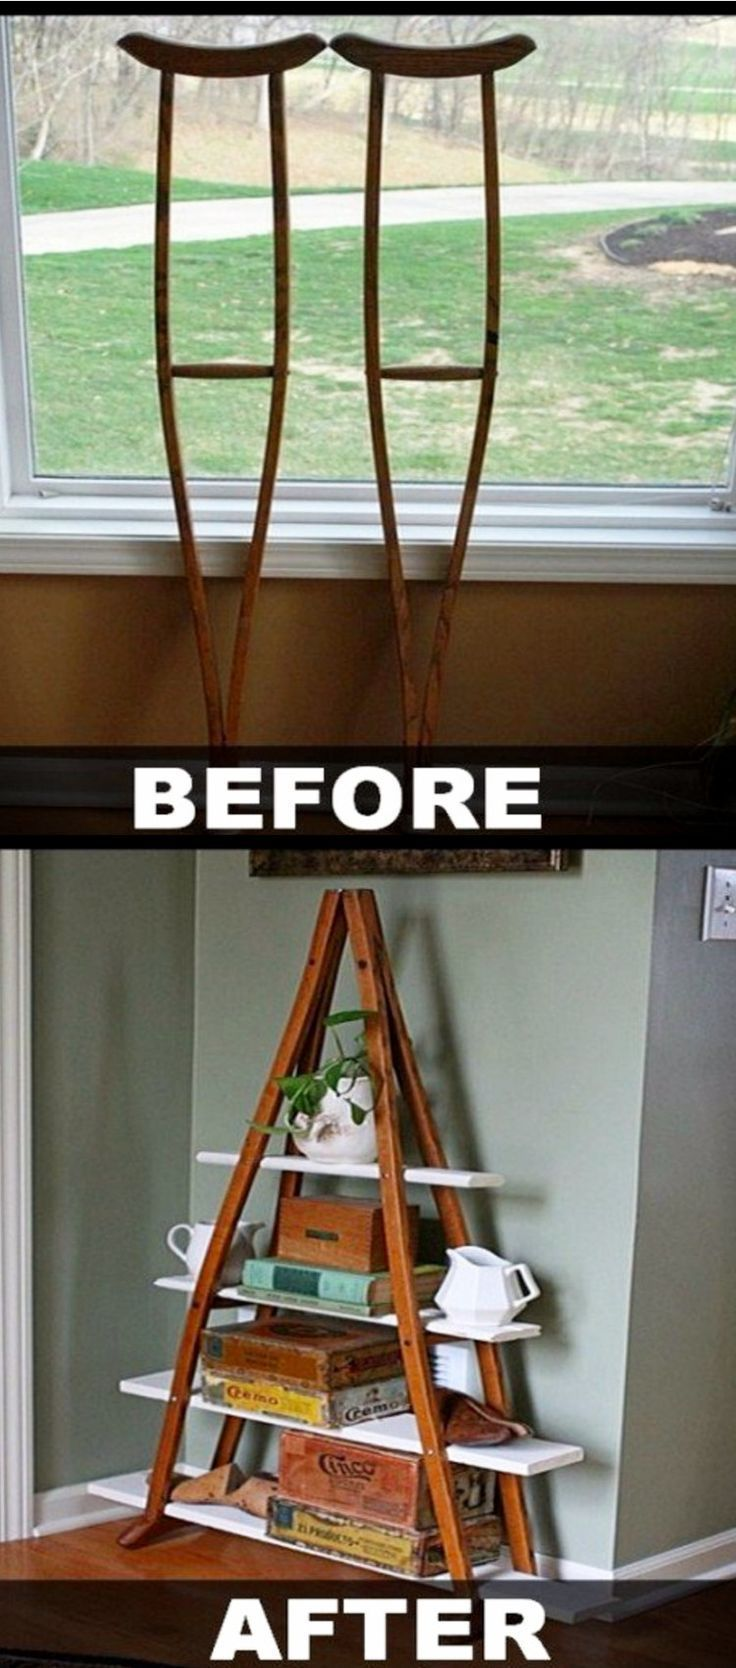 Upcycle Projects and Ideas - DIY Upcycled Household Items ...